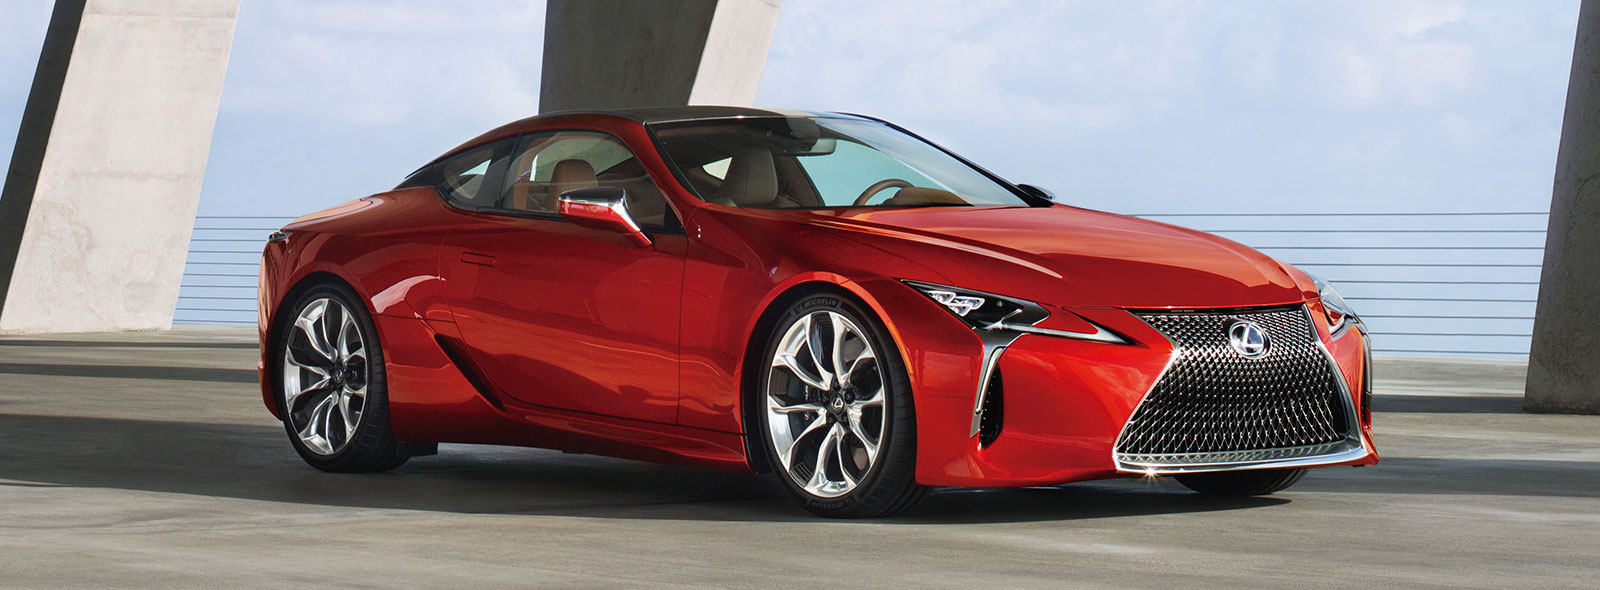 2017 Lexus LC 500 Design Gallery 001